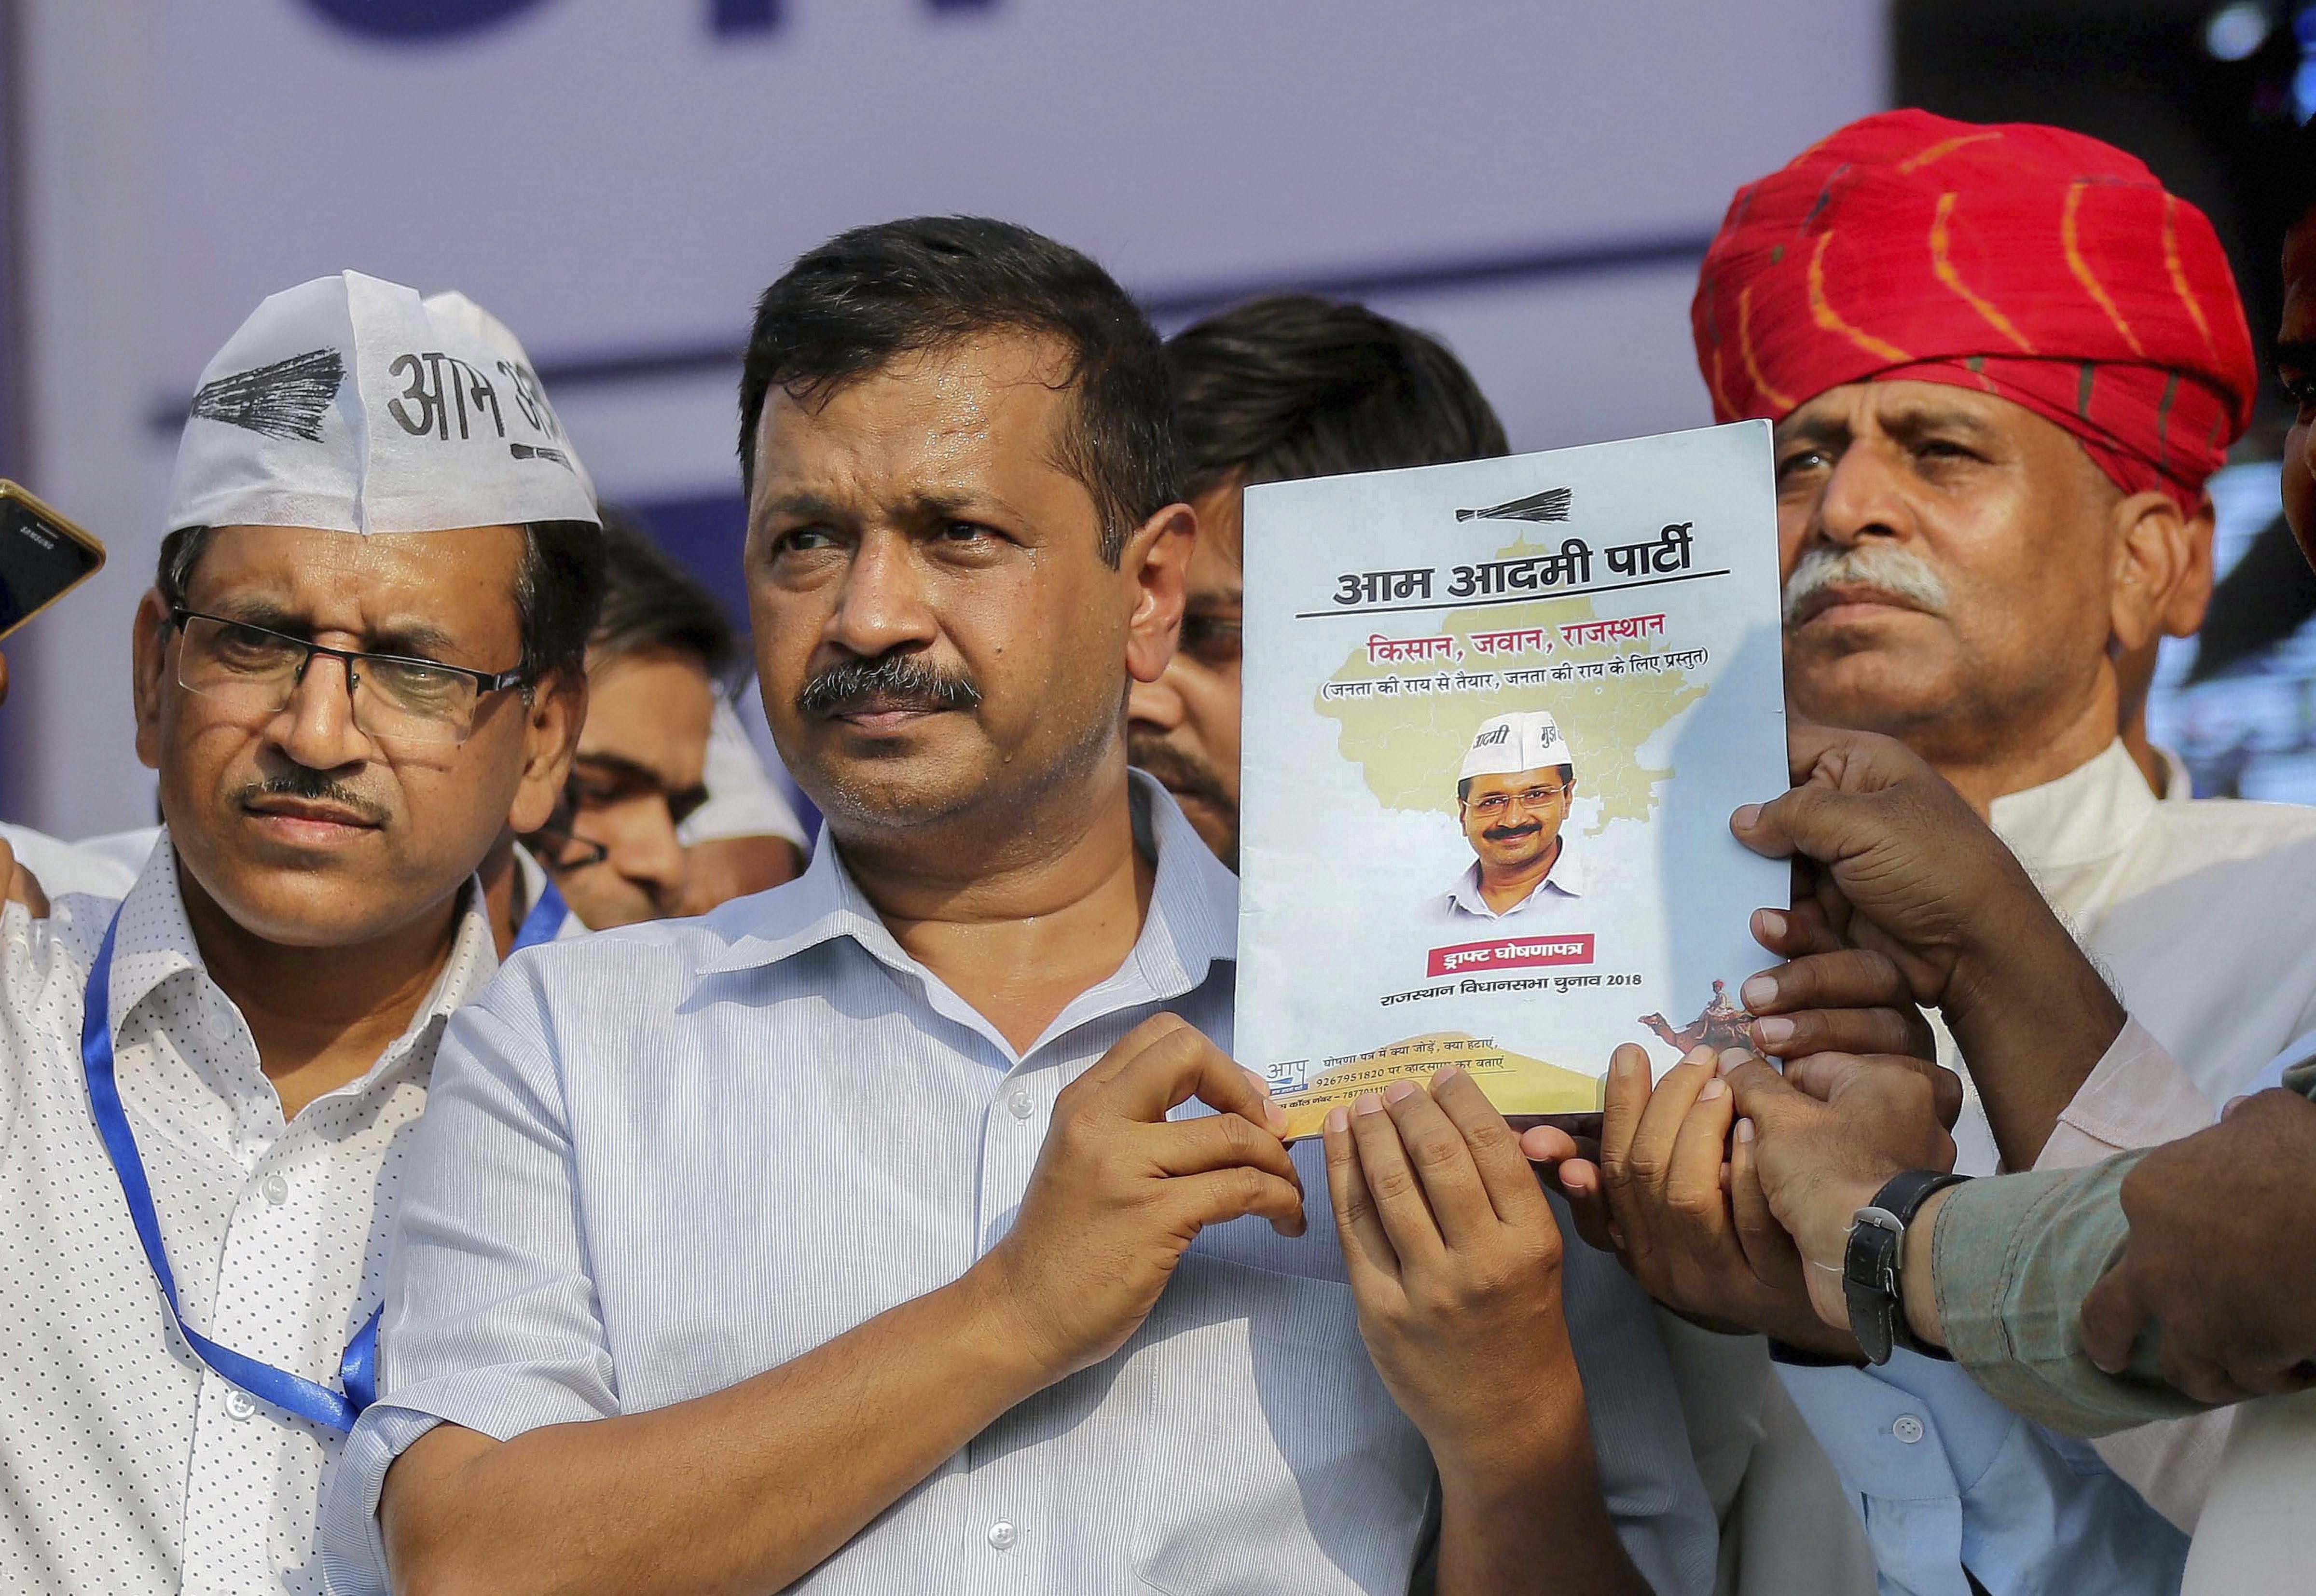 Delhi Chief Minister Arvind Kejriwal launches Aam Aadmi Party manifesto during a public meeting, at Ramlila Maidan in Jaipur  - PTI